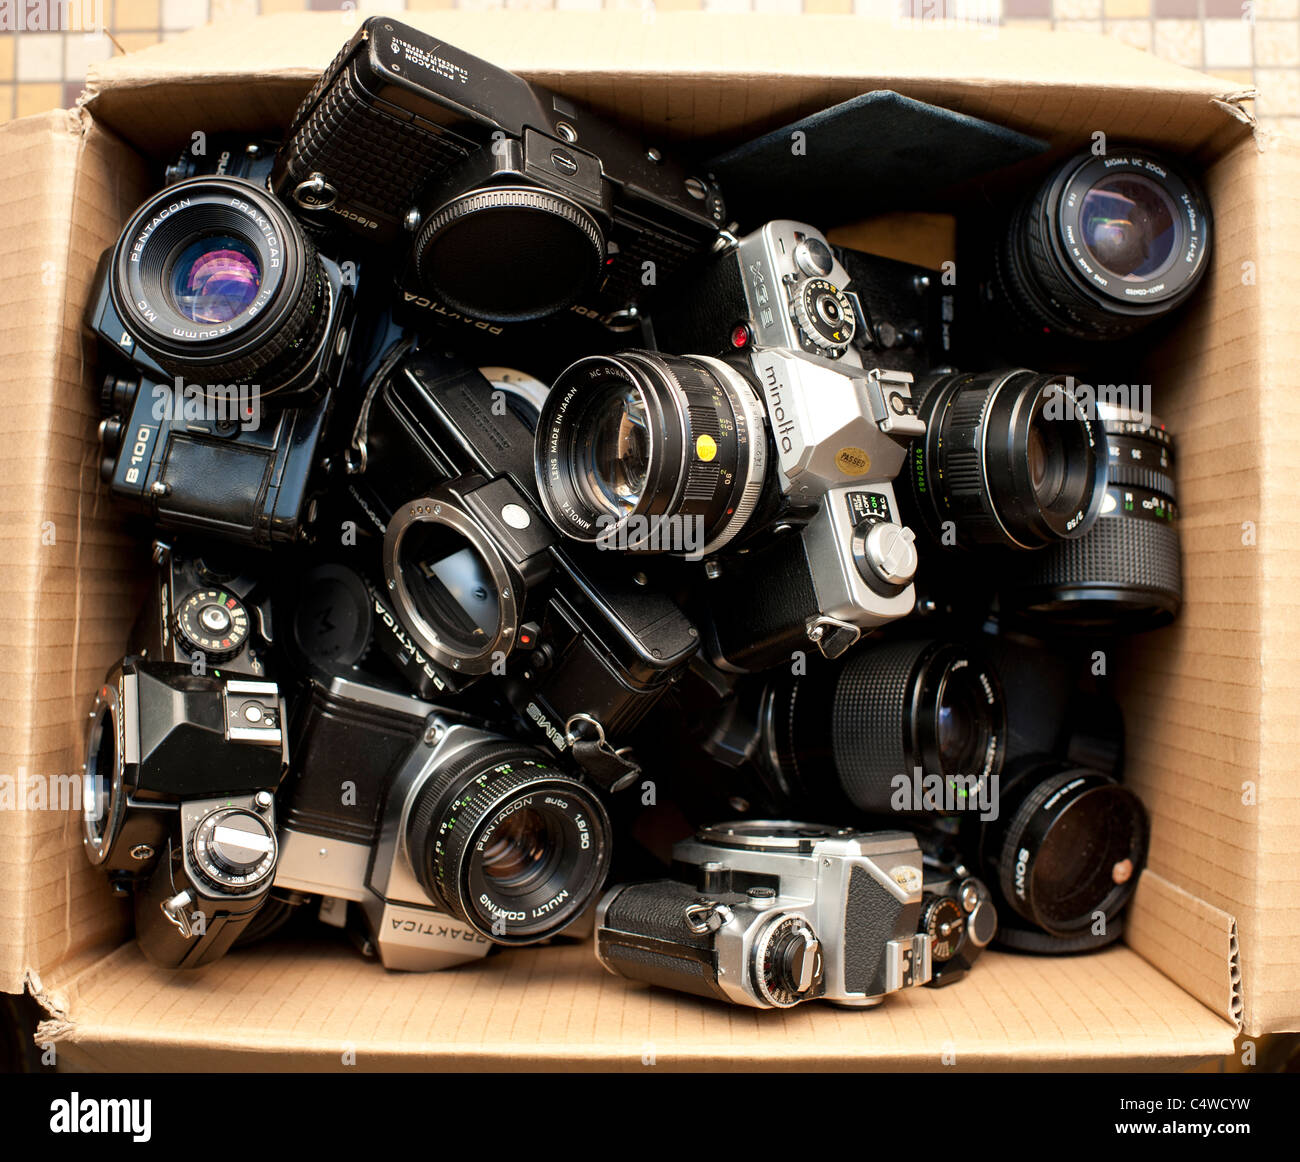 a cardboard box of assorted used old second hand 35mm old film SLR camera bodies and lenses, UK - Stock Image